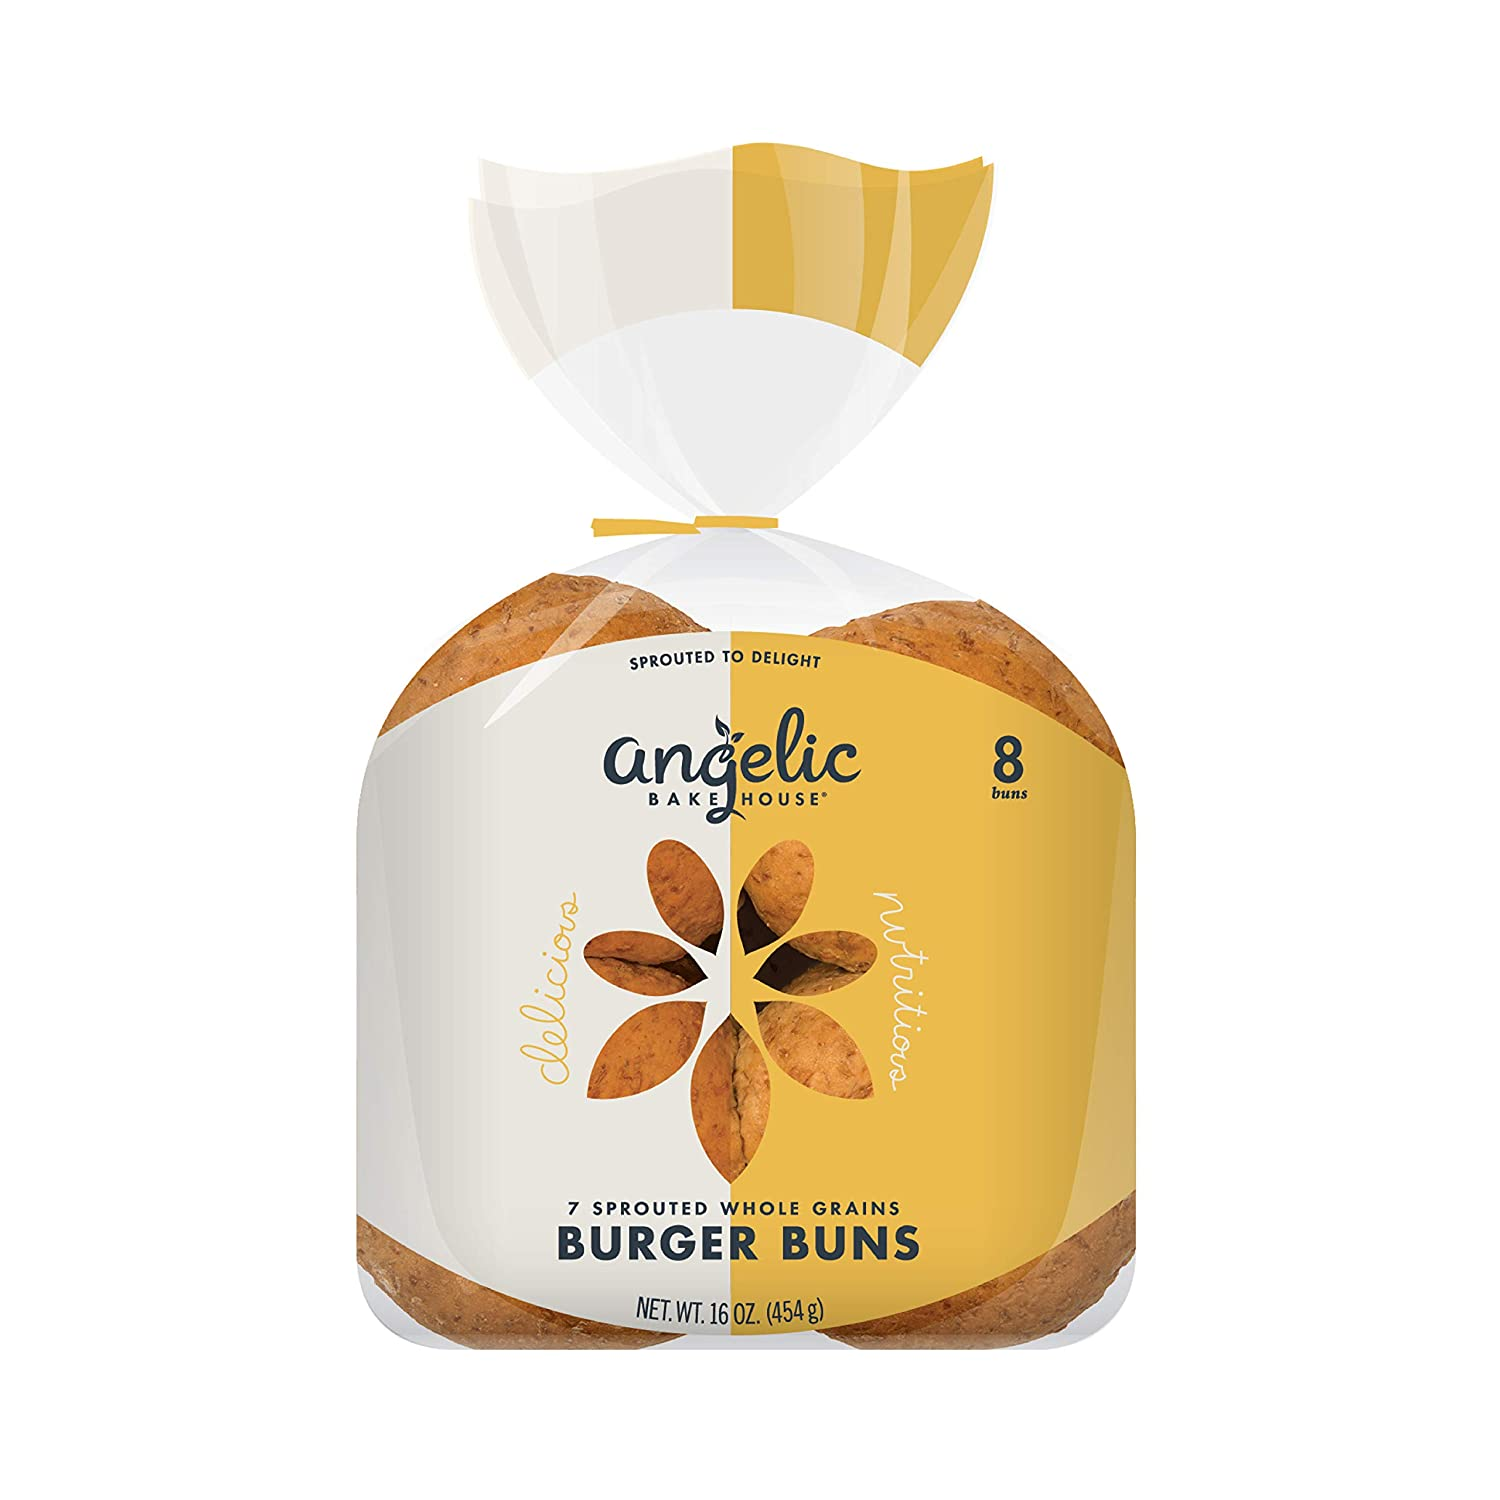 Angelic Bakehouse Burger Buns Pack – 16 Ounce, Pack of 3 – Sprouted Whole Grains – Vegan, Kosher and Non-GMO (24 Buns)